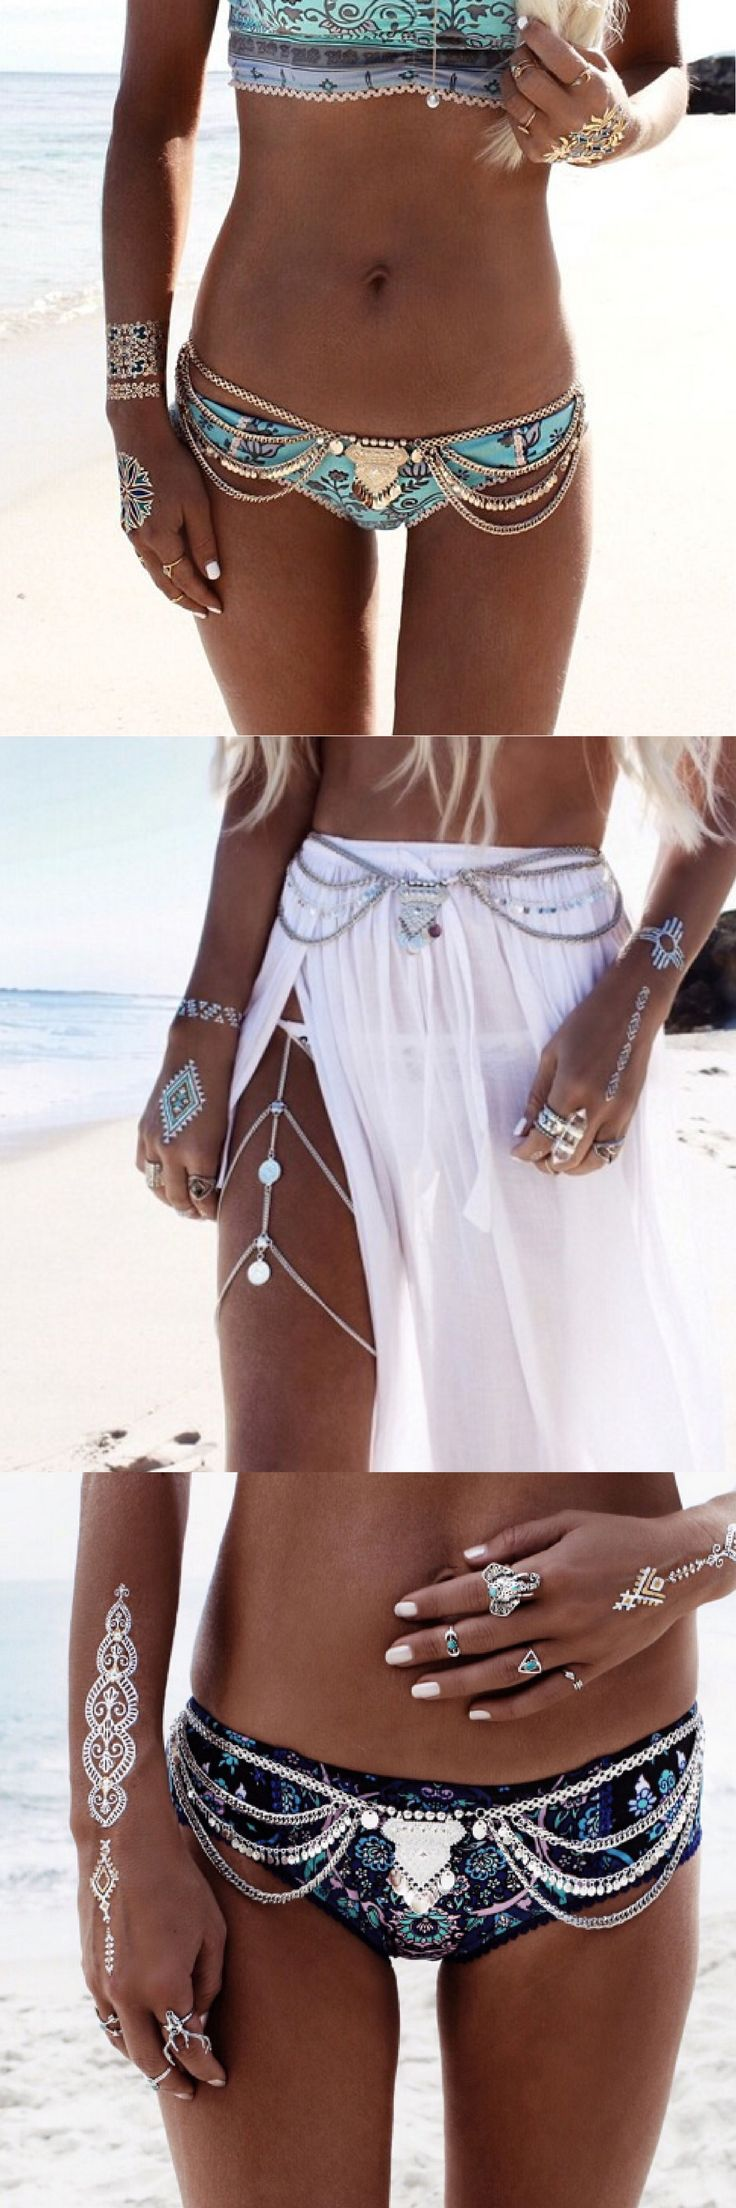 Boho Shimmy Belly Chains - perfect for vacation or music festivals!  Add an exotic charm to your ordinary outfit or swimsuit with our silver Boho Shimmy Belly Chains.  This adjustable belt can sit tight on your waist or hang low on your hips. Wear it with a bikini, a skirt or your favorite dress! It will move and sway with every movement so it's perfect for music festivals or any time you want to shimmy and accentuate your curves!